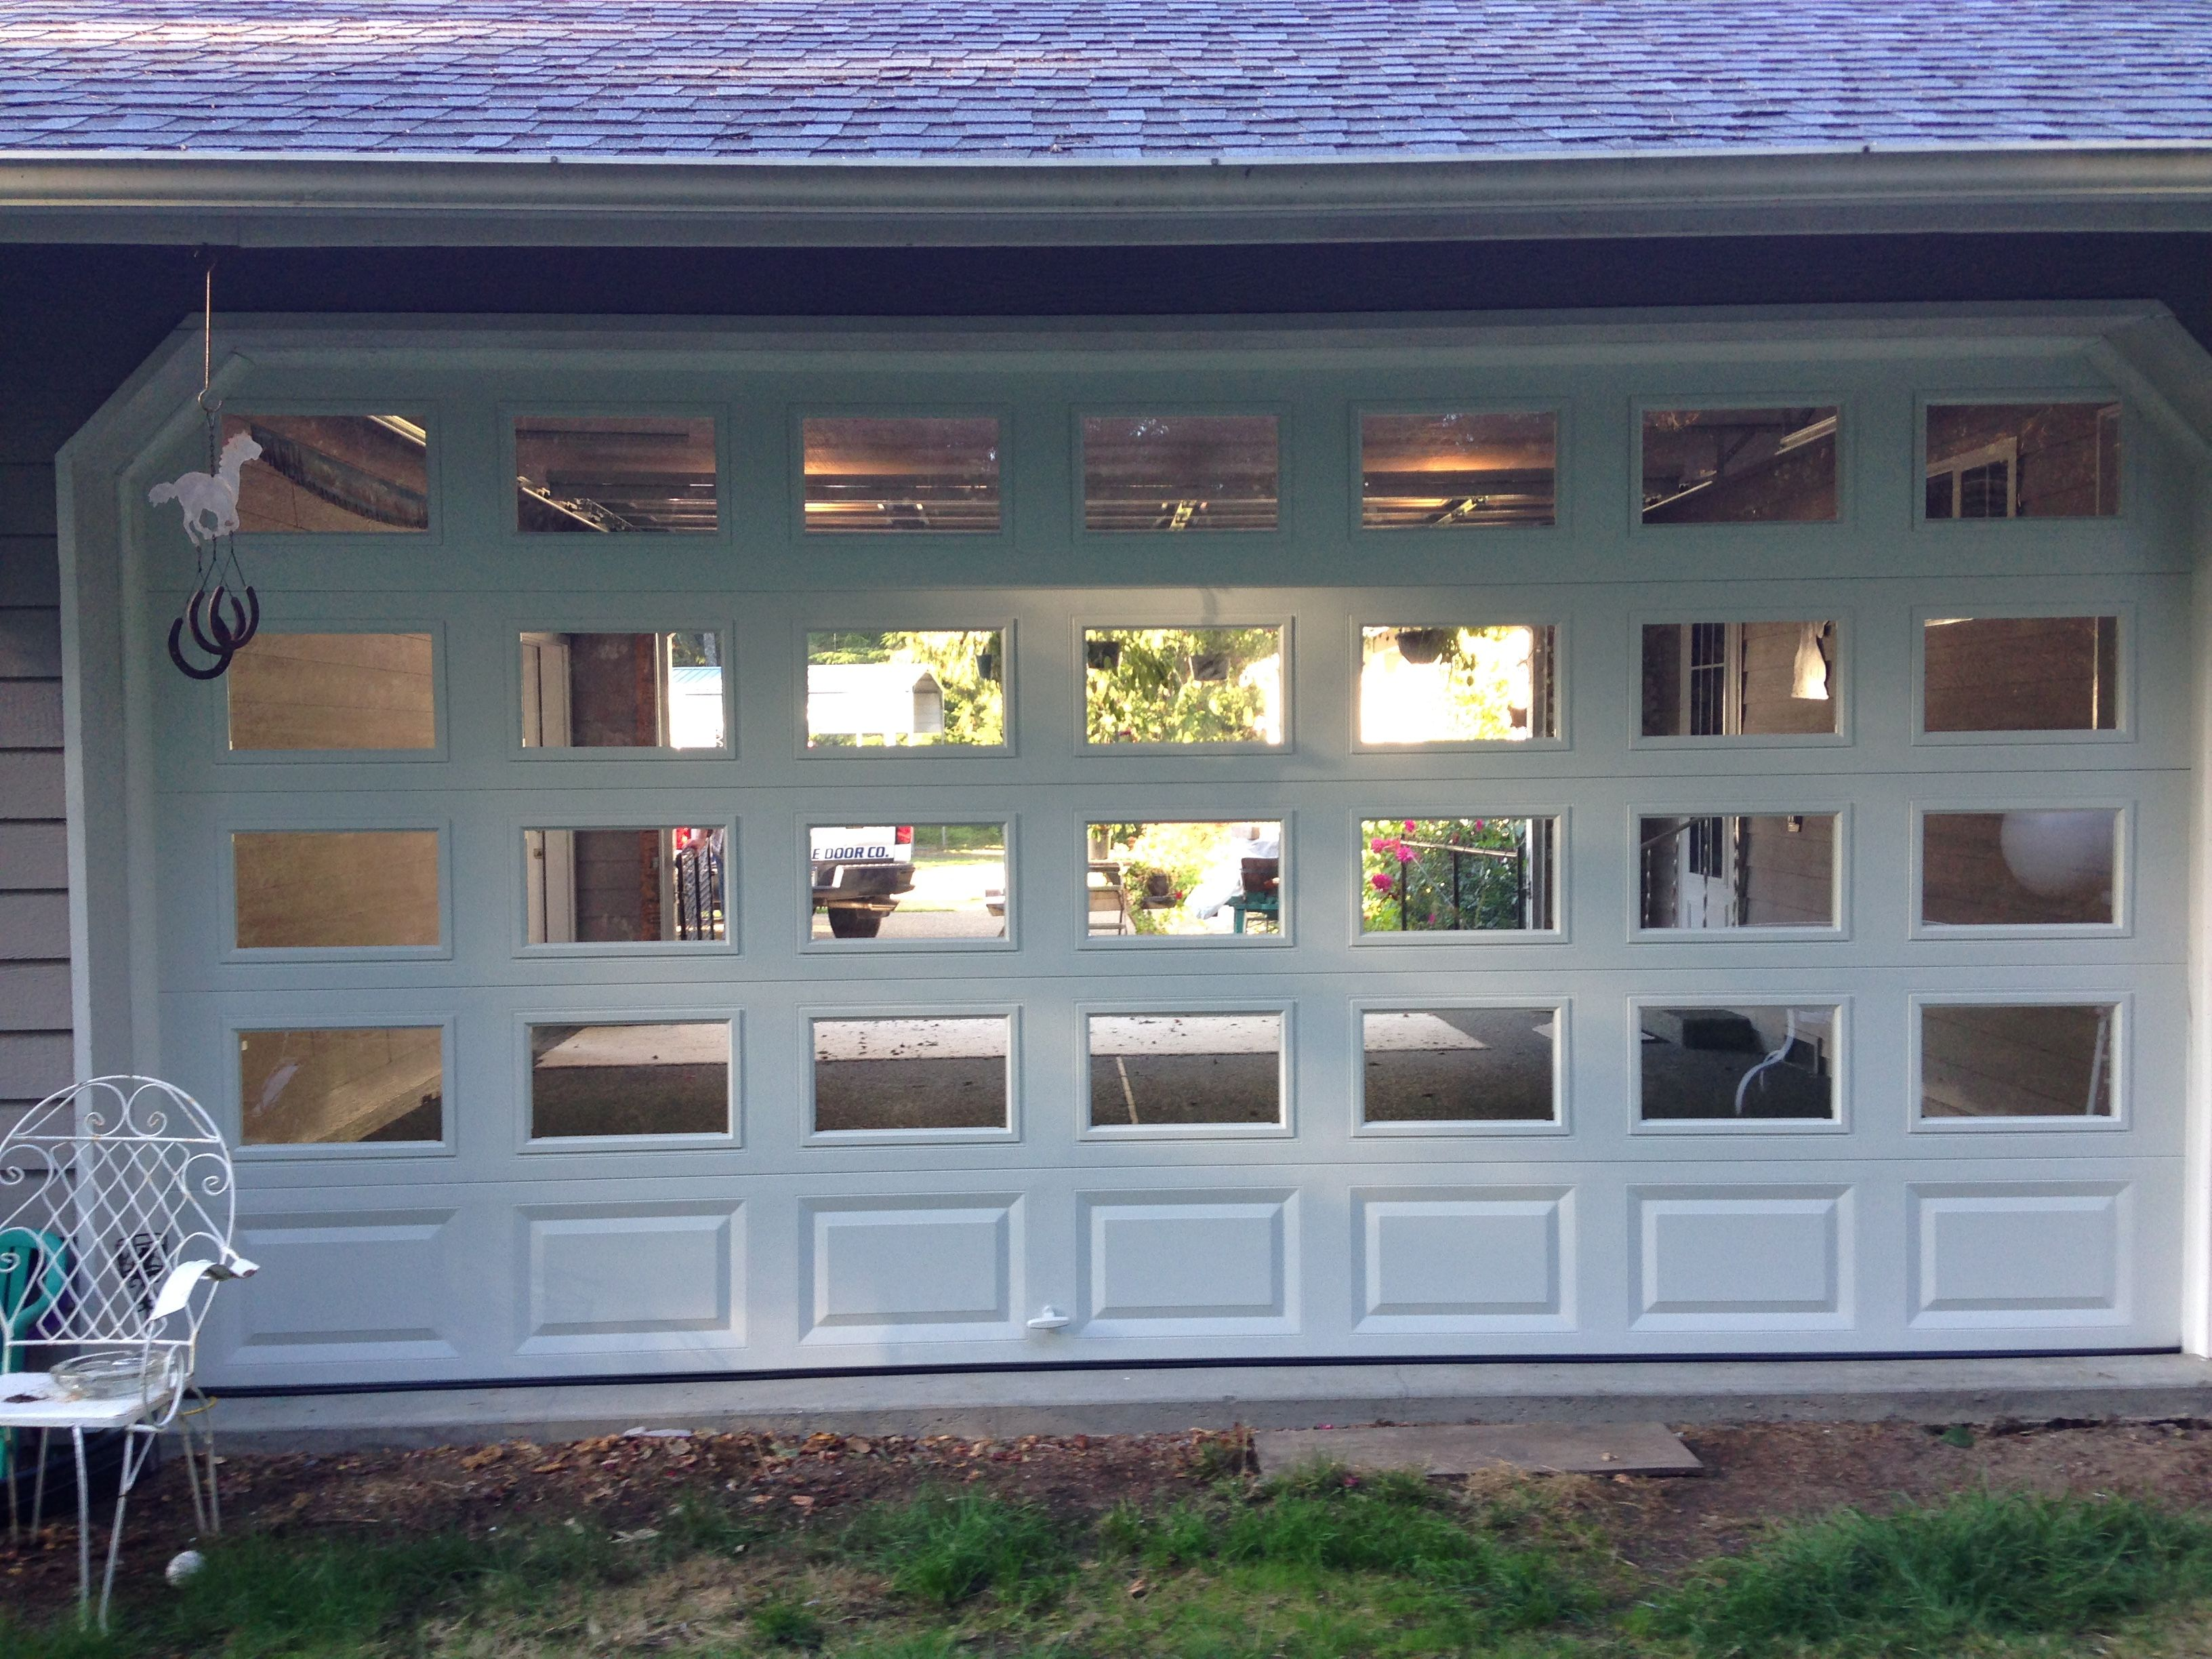 Need More Natural Light In Your Garage Consider Adding Glass Sections We Can Work With Any Budget To Get Garage Door Installation Garage Doors Outdoor Decor